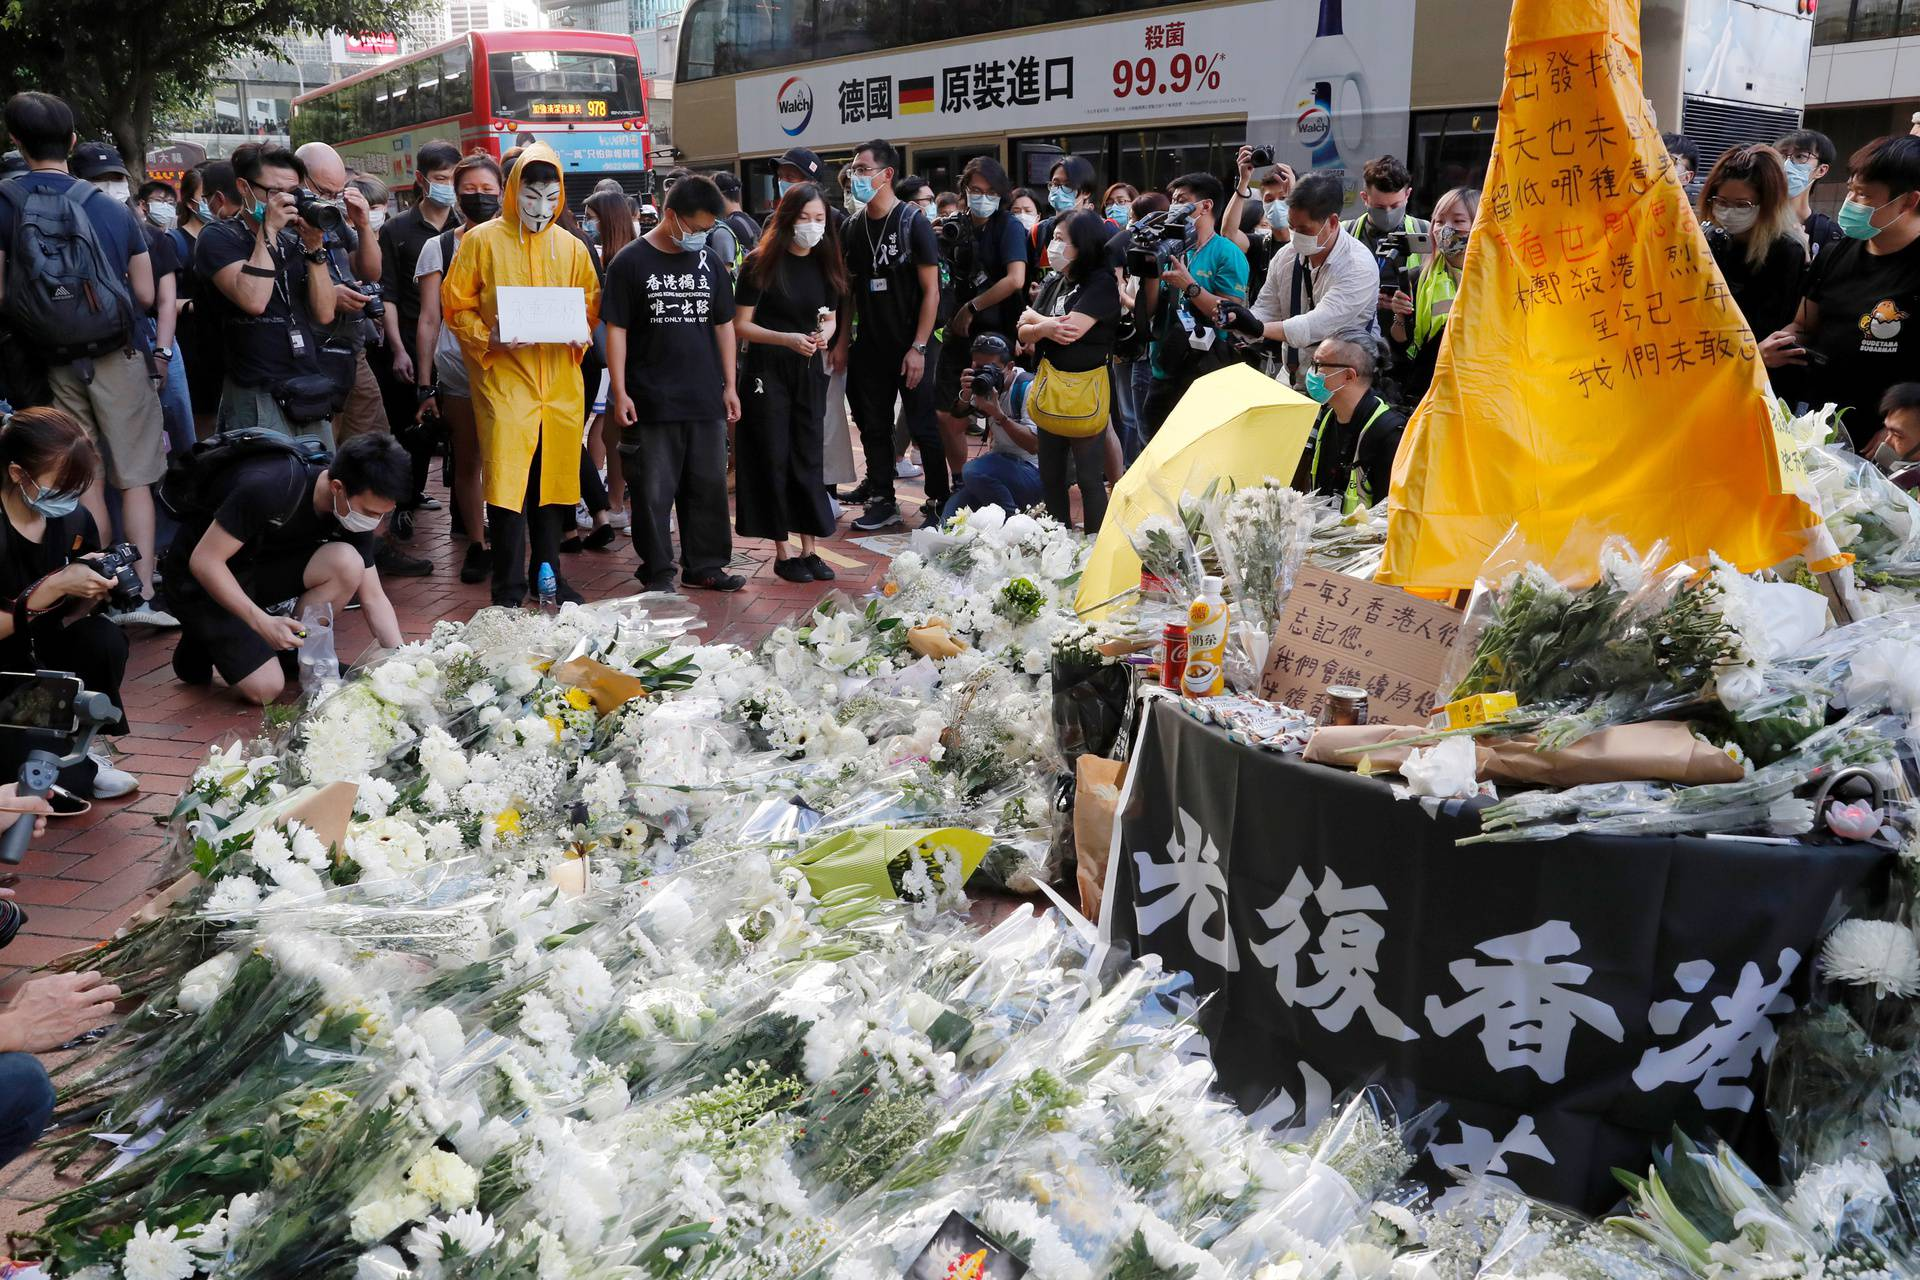 A vigil for a protester Marco Leung Ling-kit who fell to his death during a demonstration outside the Pacific Place mall a year ago, in Hong Kong